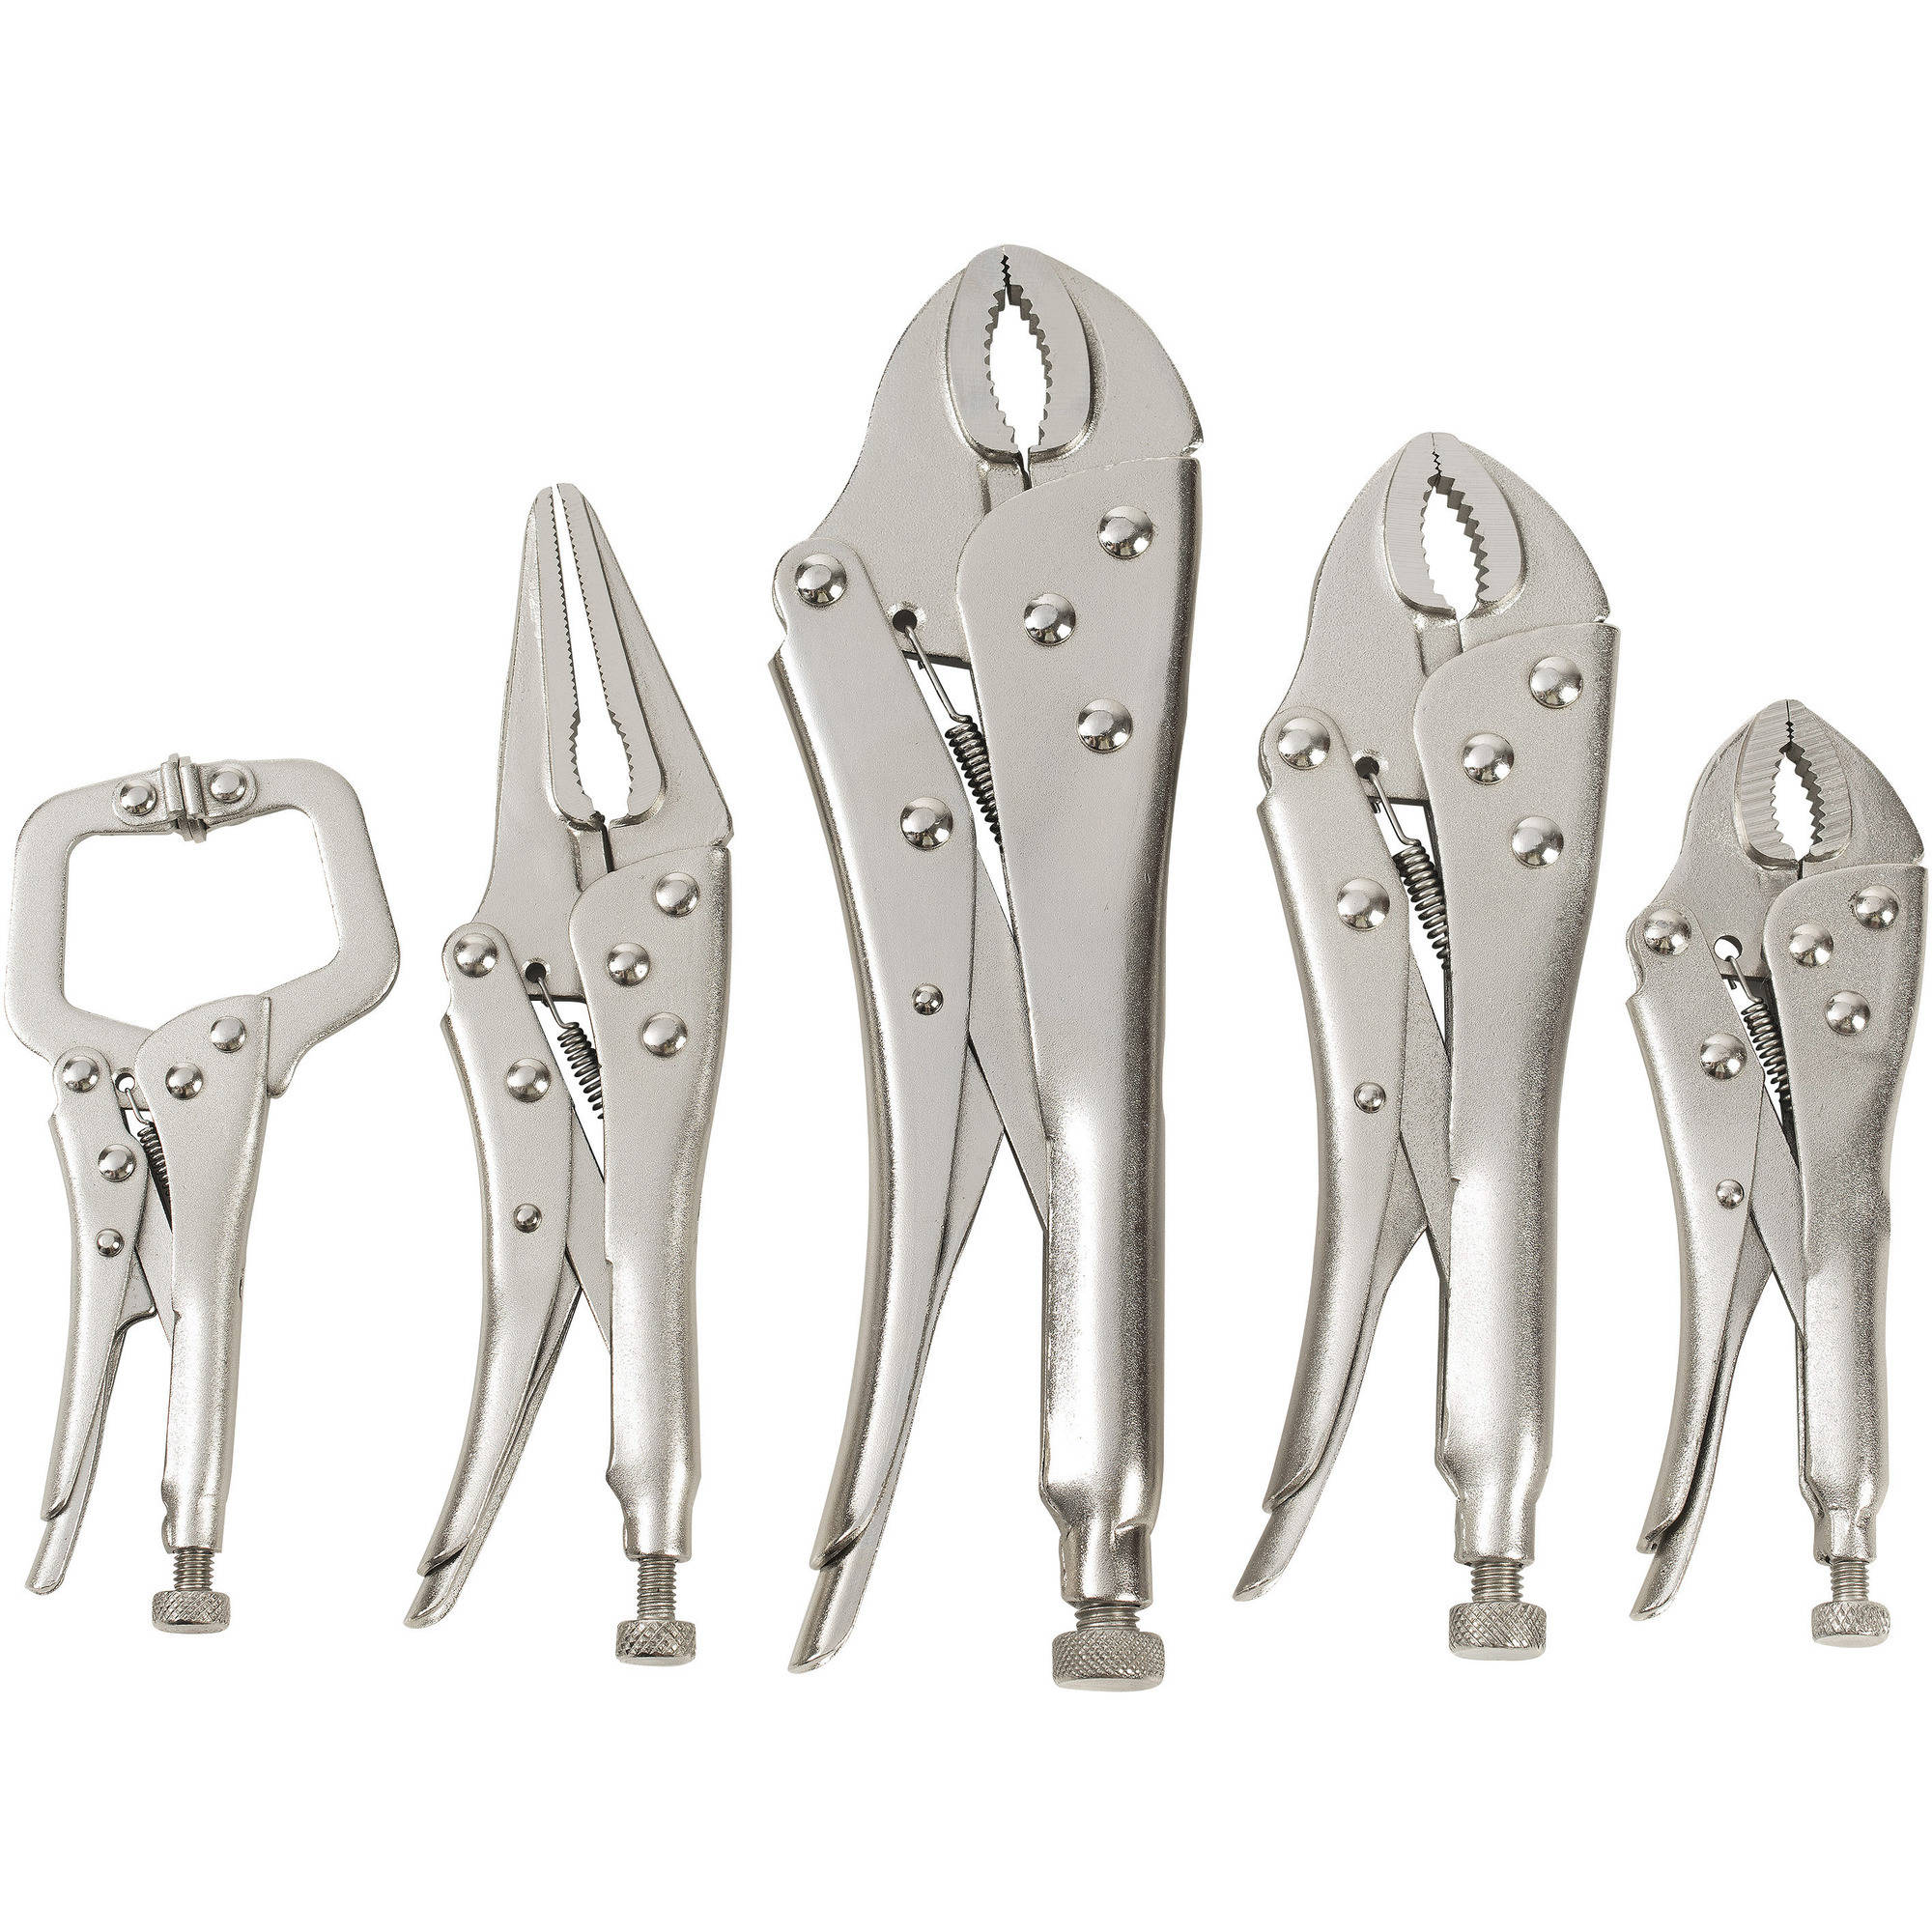 Hyper Tough Locking Pliers, 5-pieces